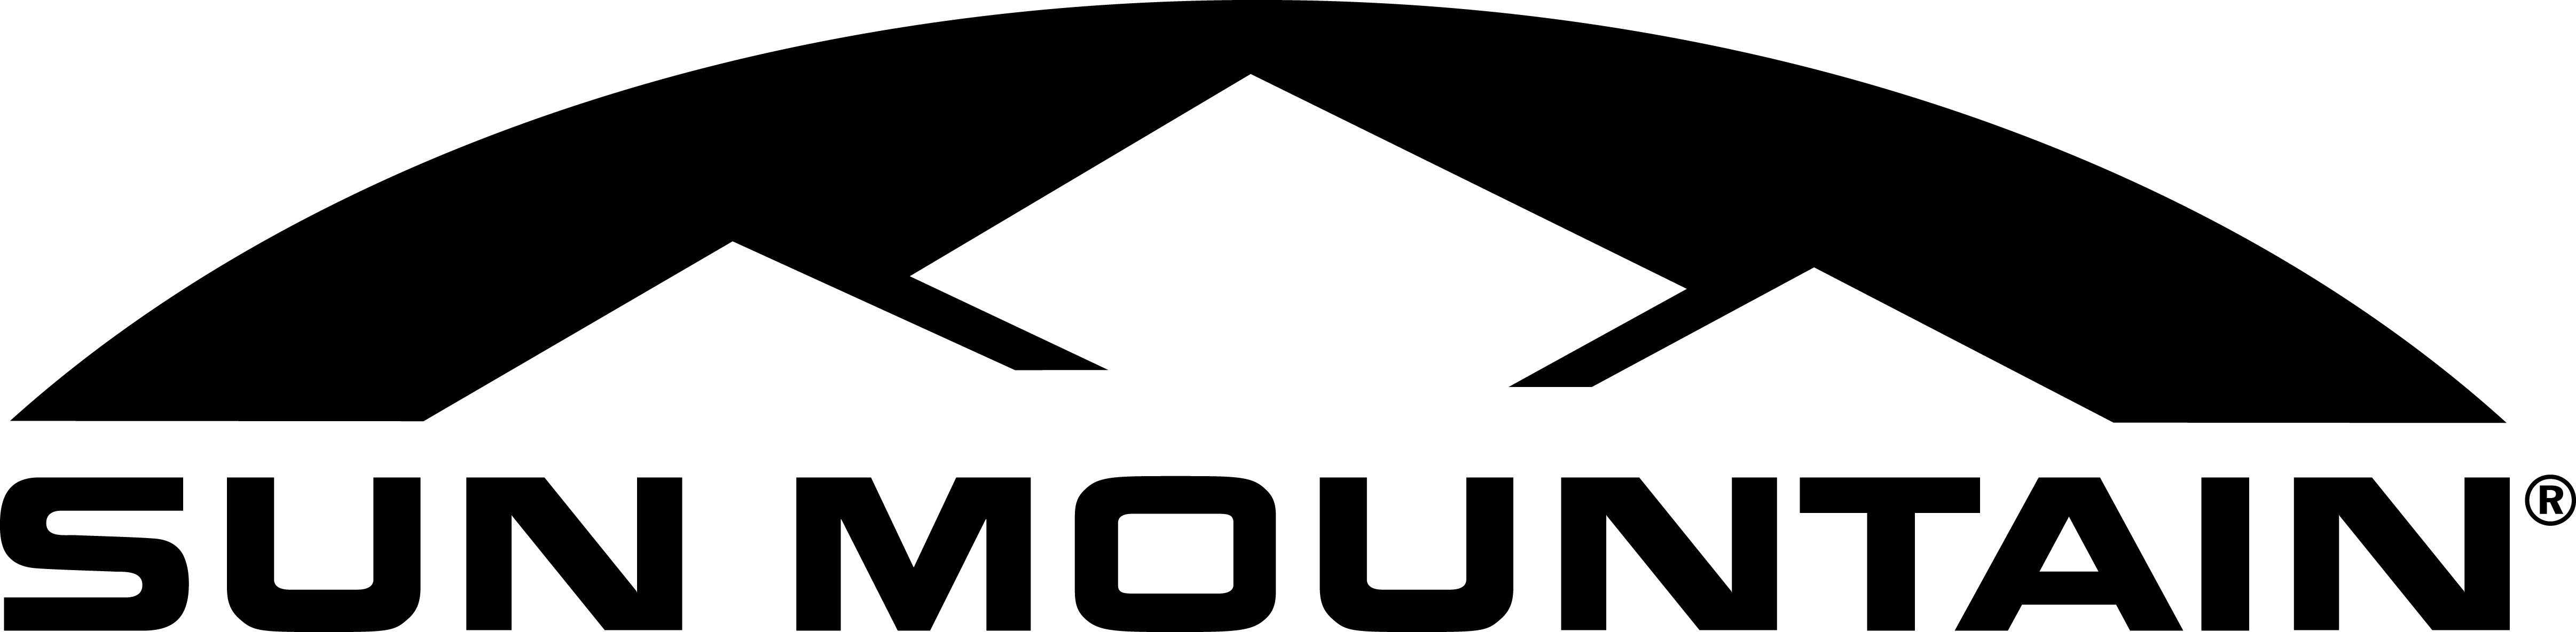 From SUN Mountain.logo